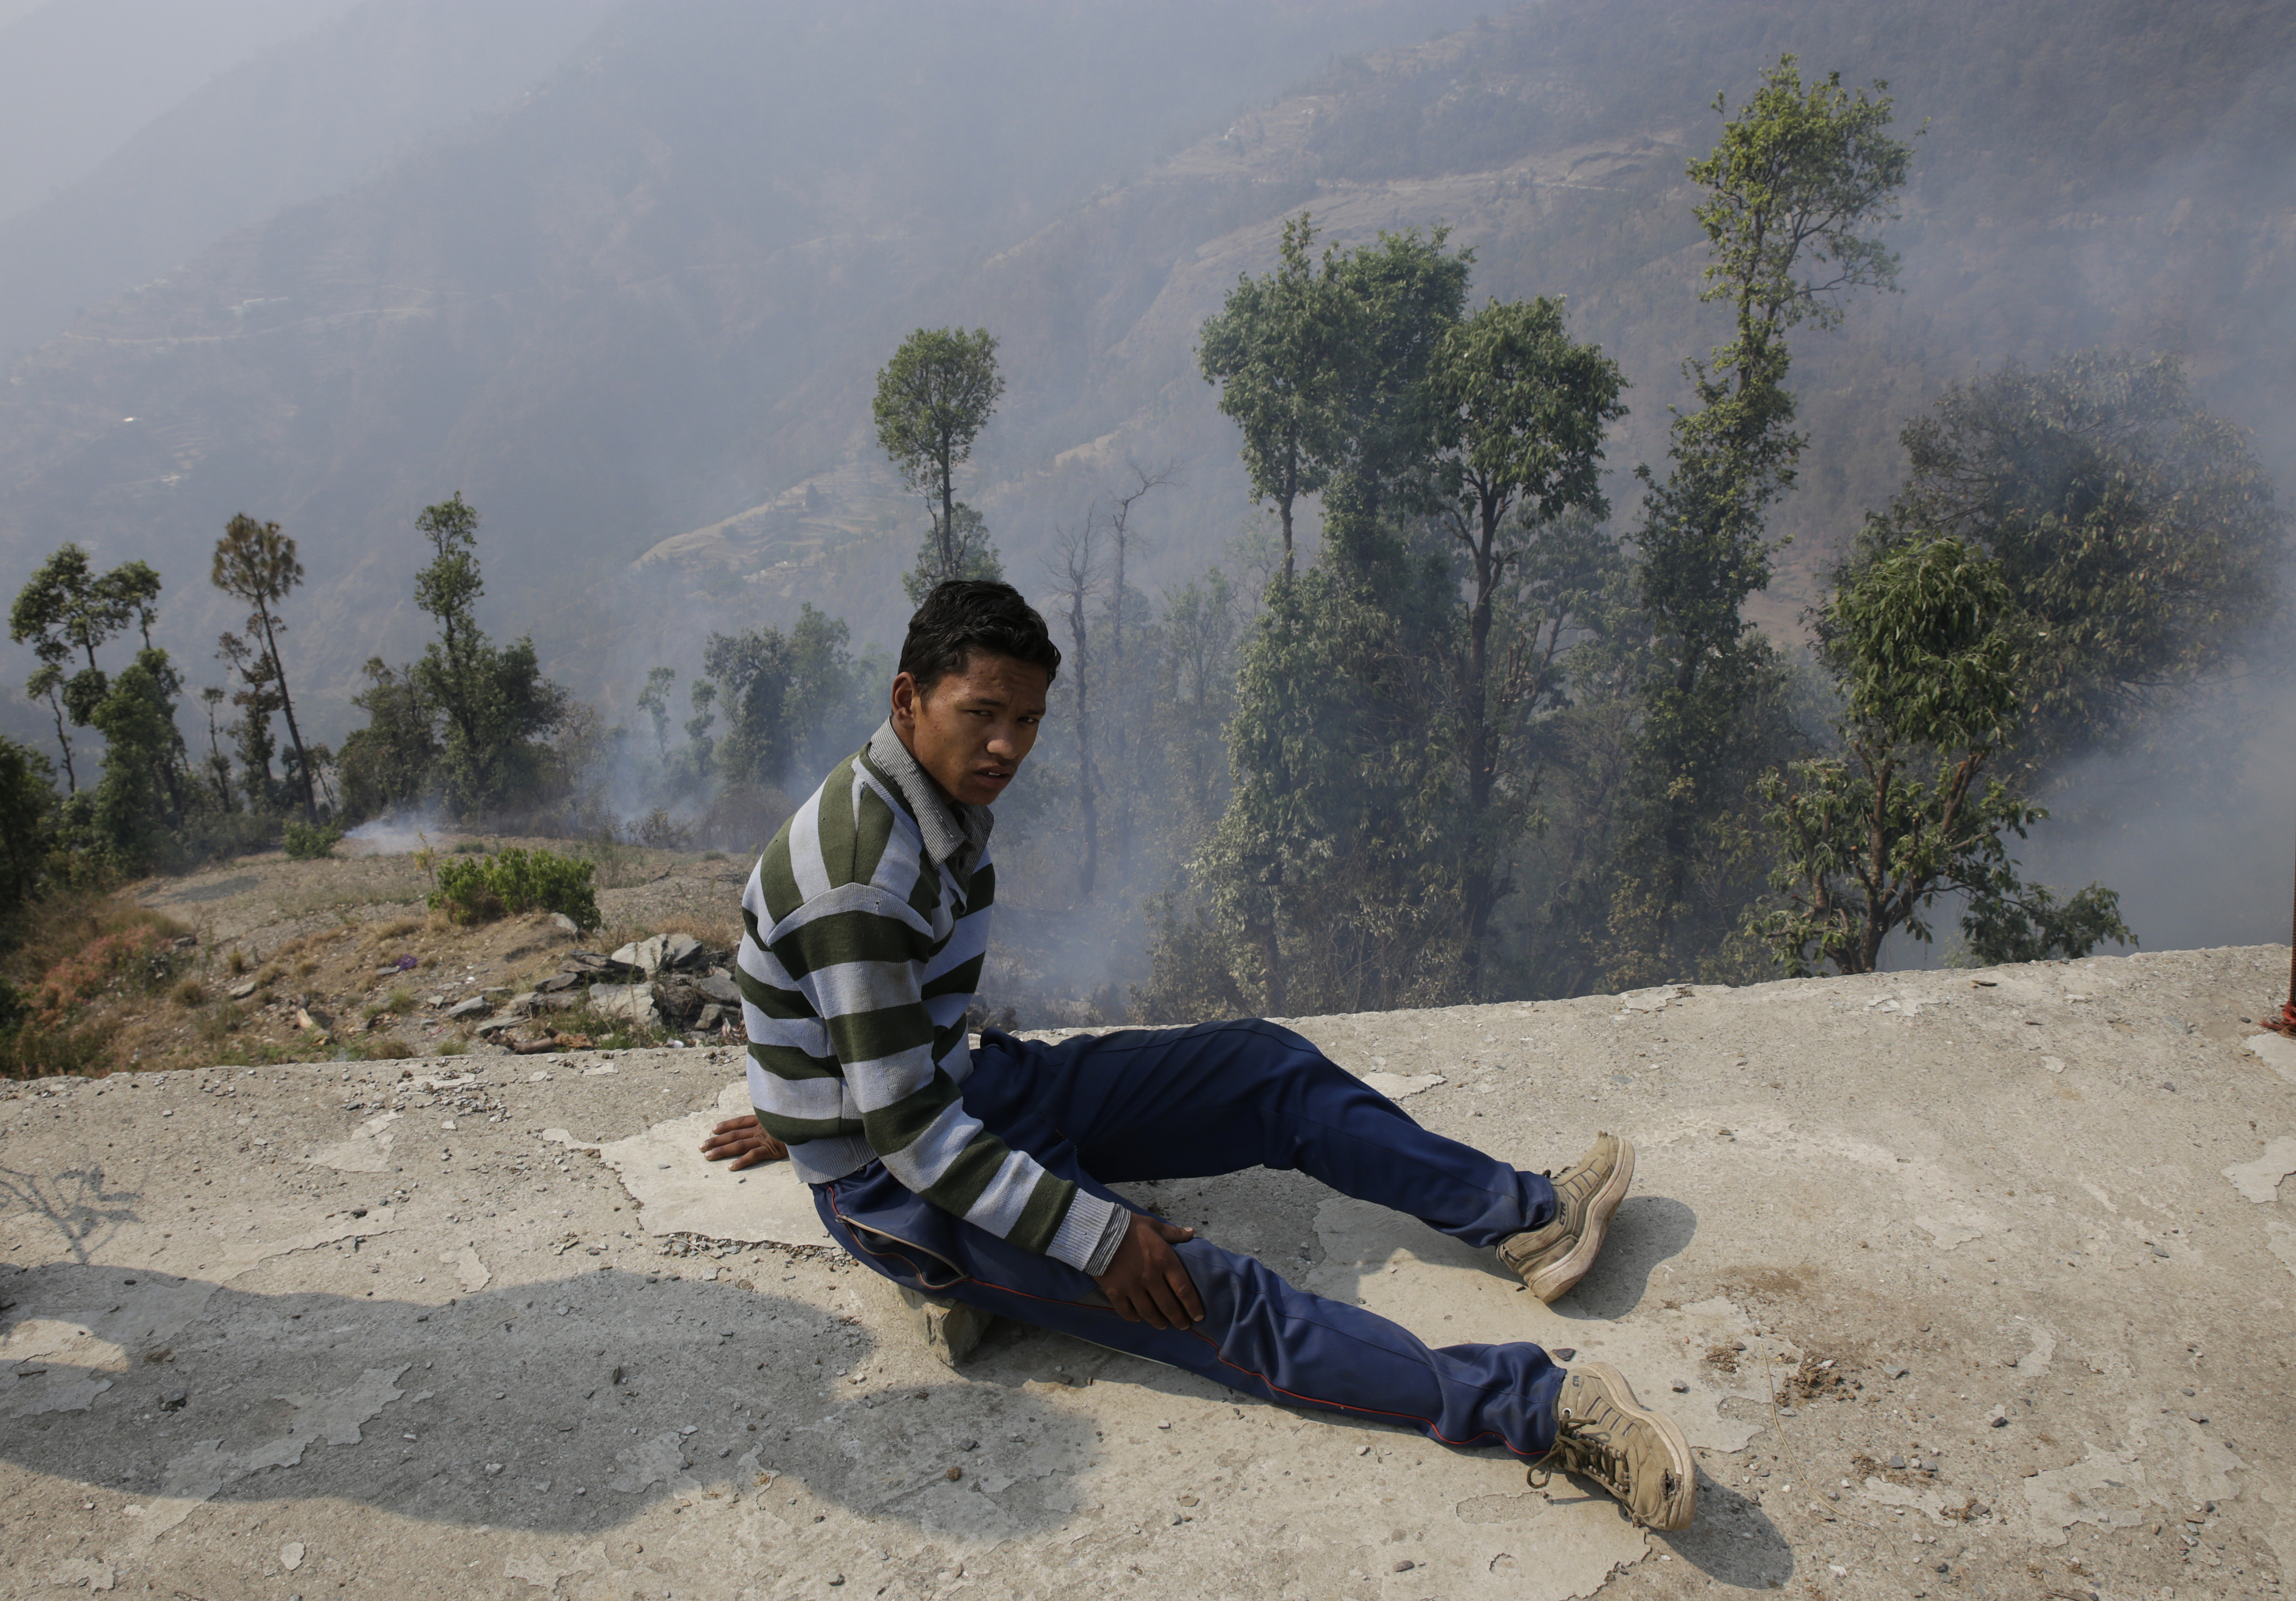 Hemant, a class 10 student from Gugghu Sigri got hurt when he tried to put out the fire near his house